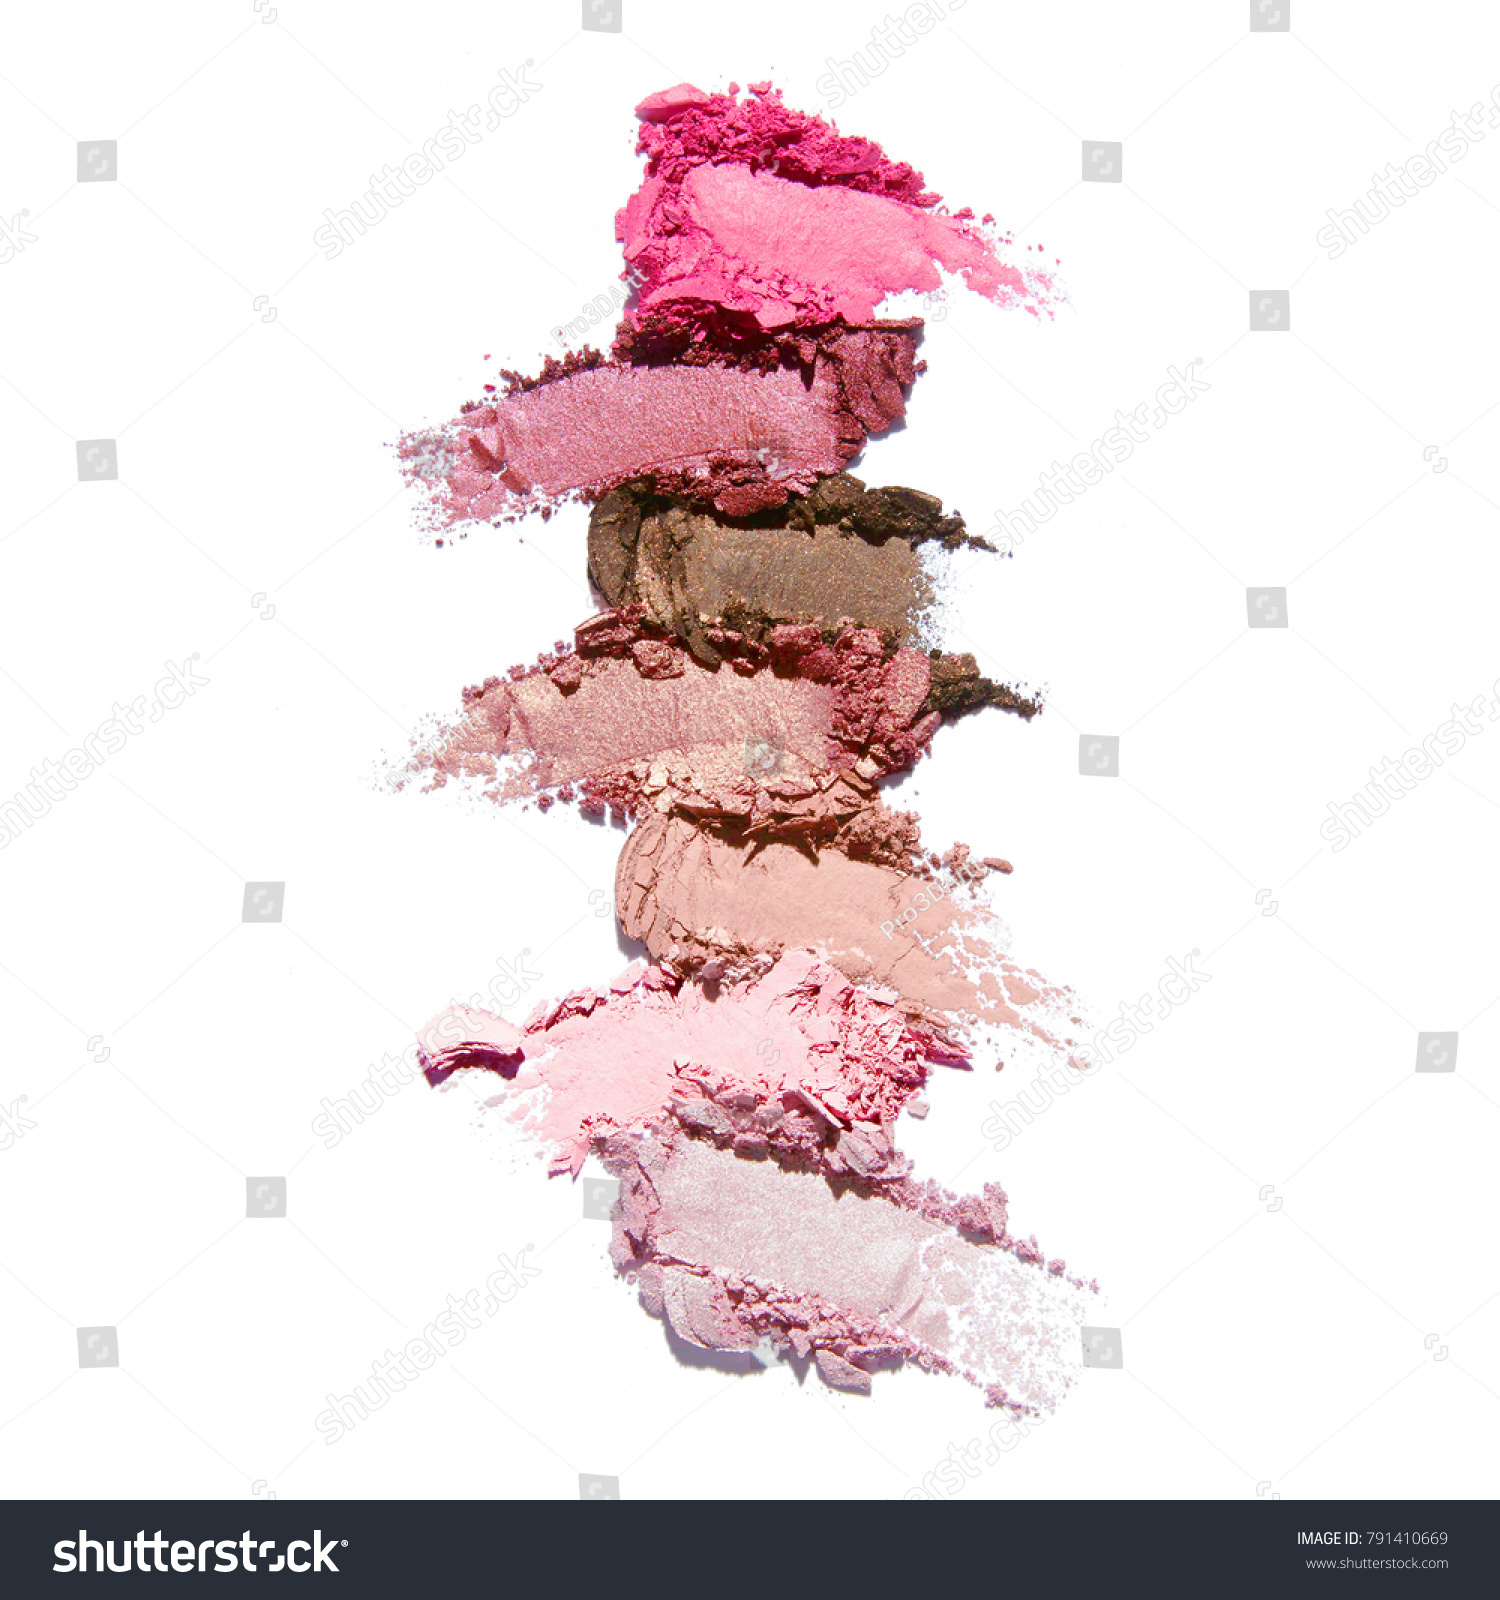 Collection of Makeup Blush Powder Isolated on White Background. Matte Eye Shadow Smears. Grooming Products. Foundation Swatches. Eyeshadow Smudge #791410669